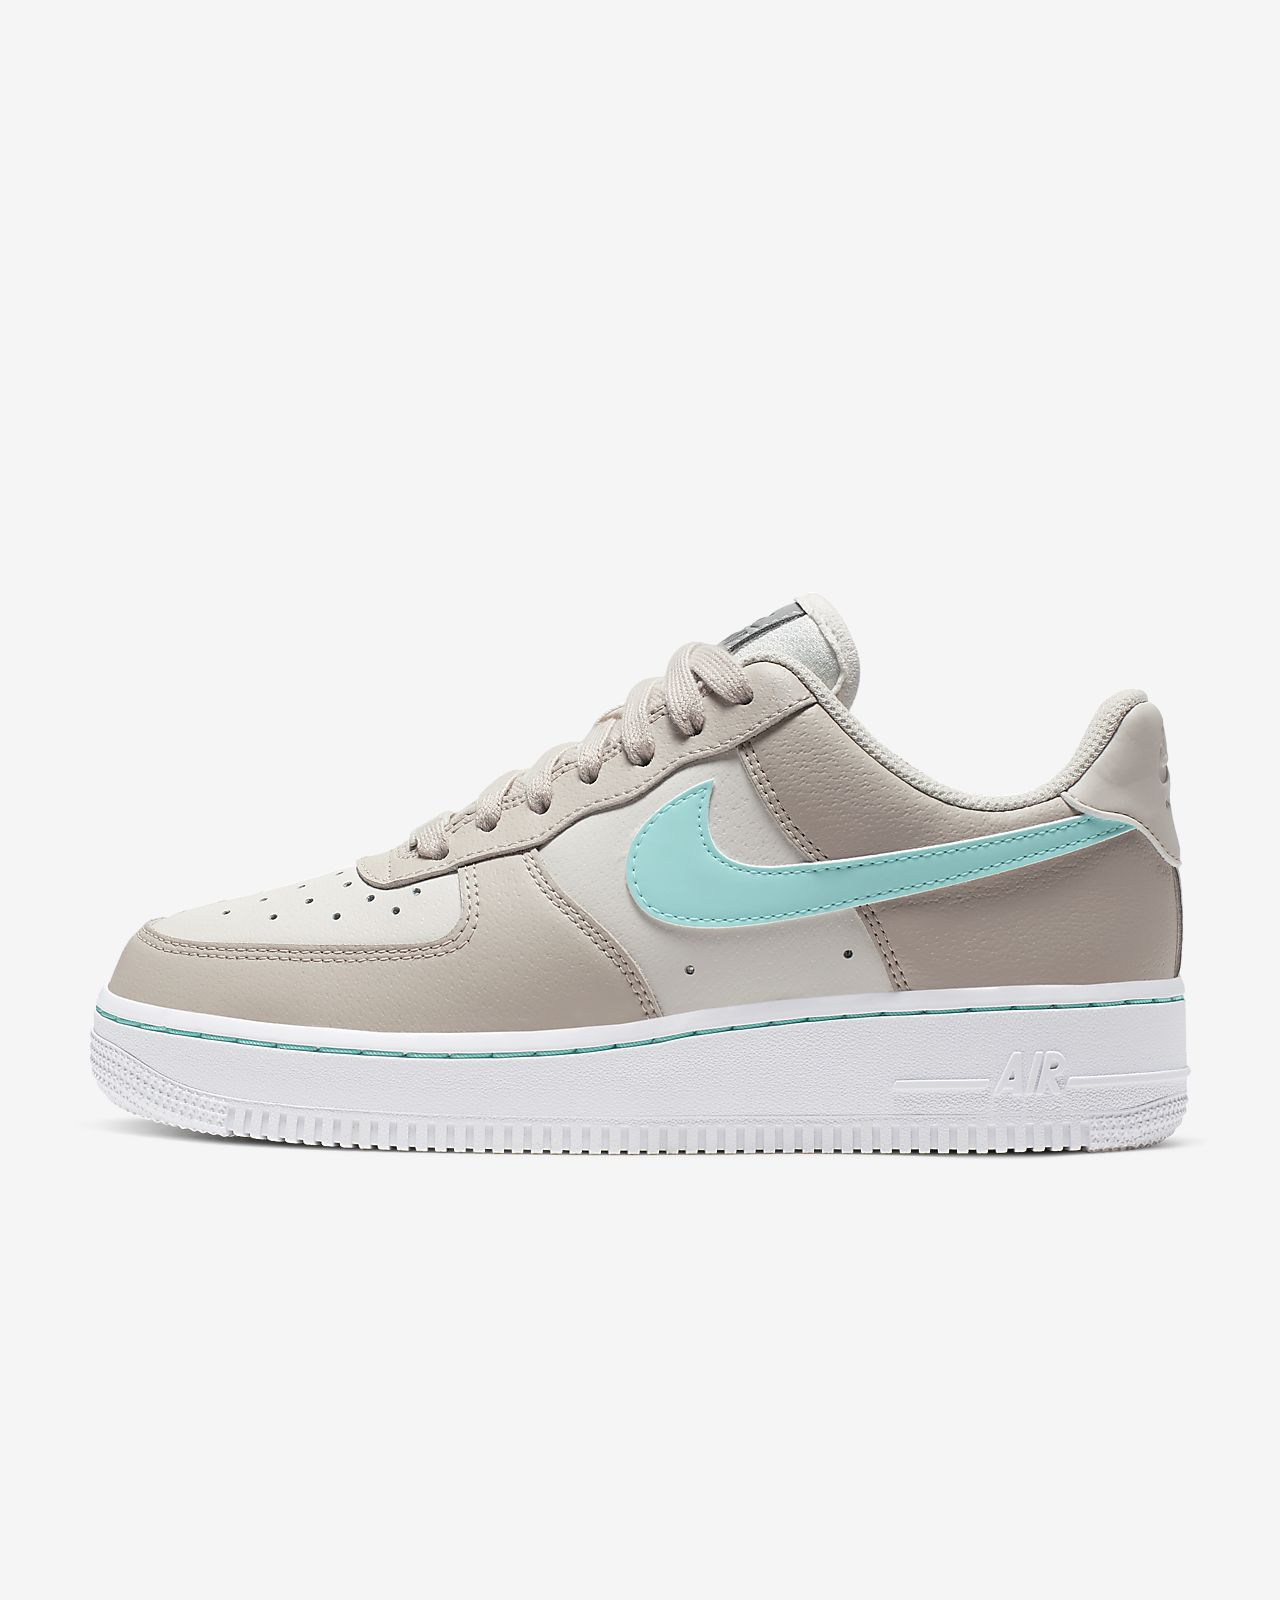 tout neuf b10a8 a53e5 Chaussure Nike Air Force 1 Low pour Femme